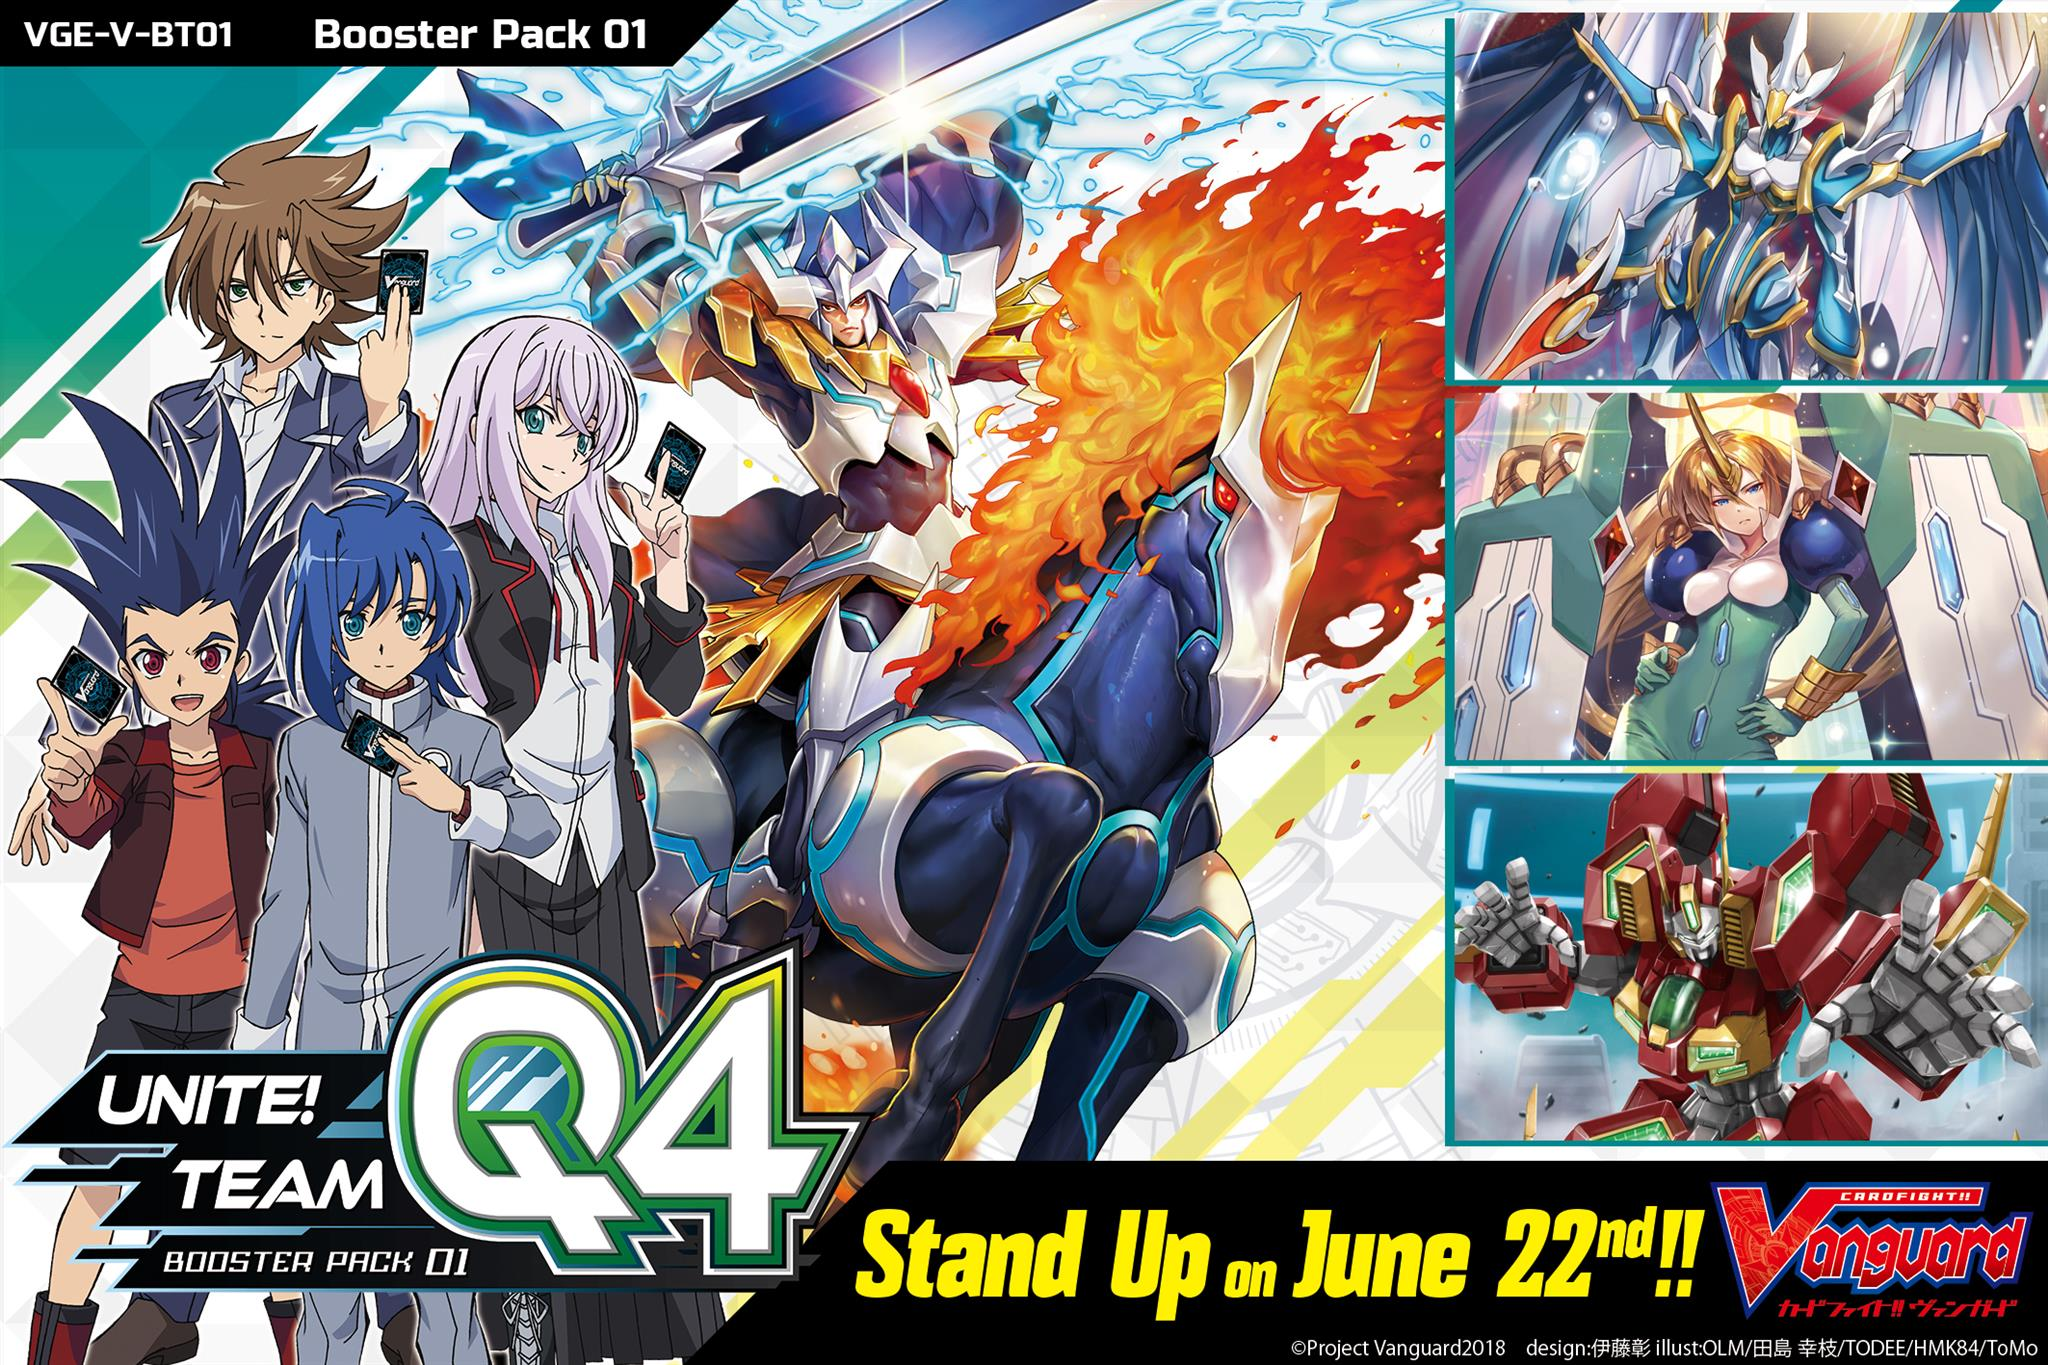 Cardfight! Vanguard V-BT01 Team Q4 booster box | SKYFOX GAMES